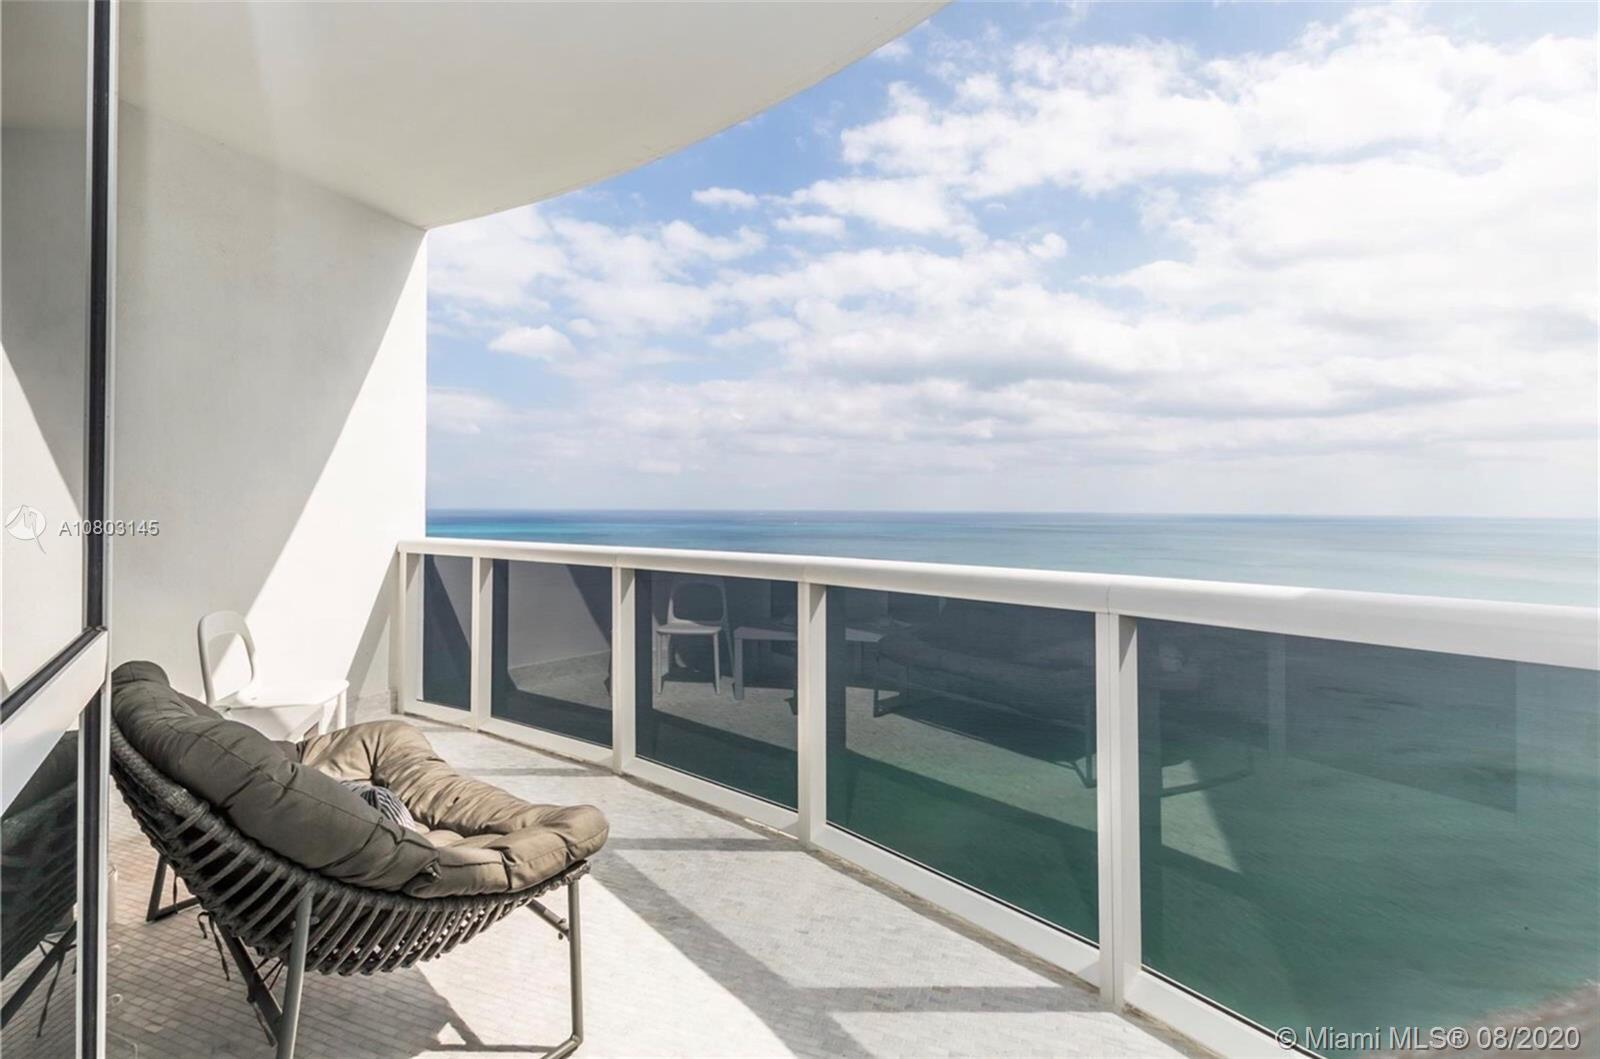 18201 Collins Ave # 4409A, Sunny Isles Beach, Florida 33160, 2 Bedrooms Bedrooms, ,2 BathroomsBathrooms,Residential,For Sale,18201 Collins Ave # 4409A,A10803145